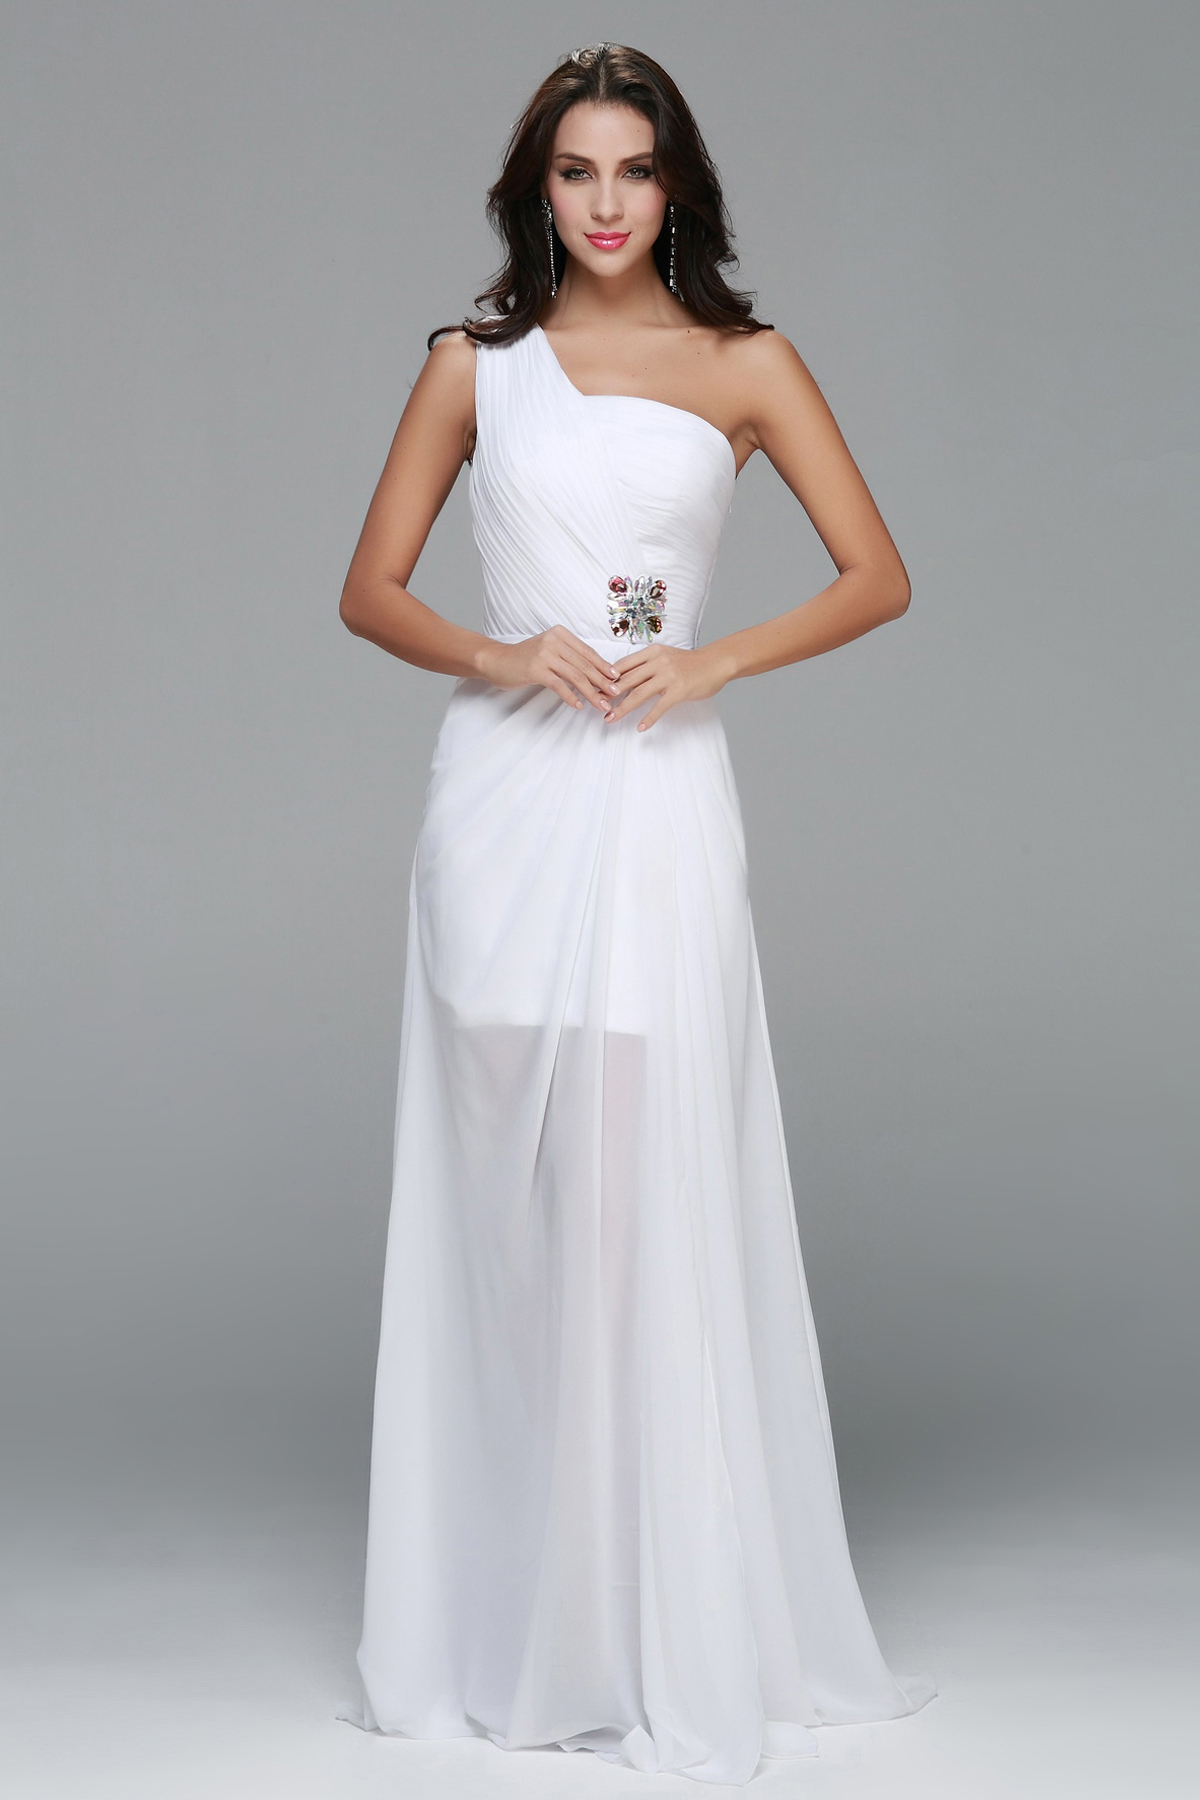 Simple One Shoulder A-line Long White Chiffon Prom Dress with Beading